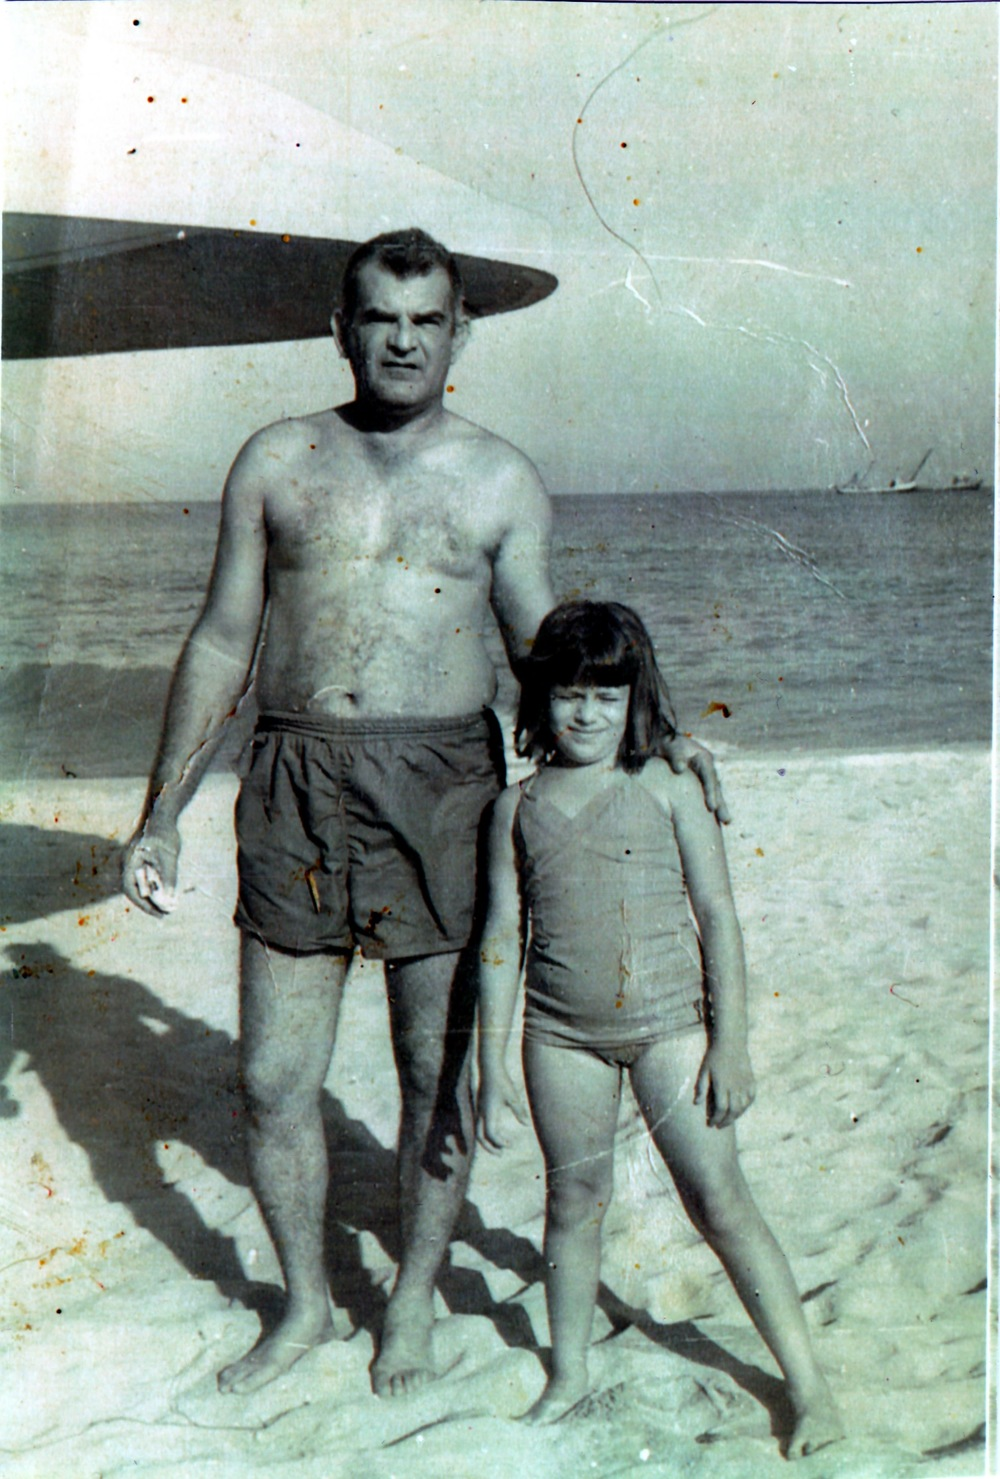 My mother and her father in 1970 during their last trip to the beach in Havana. It was the last time that they went to the beach in Cuba.